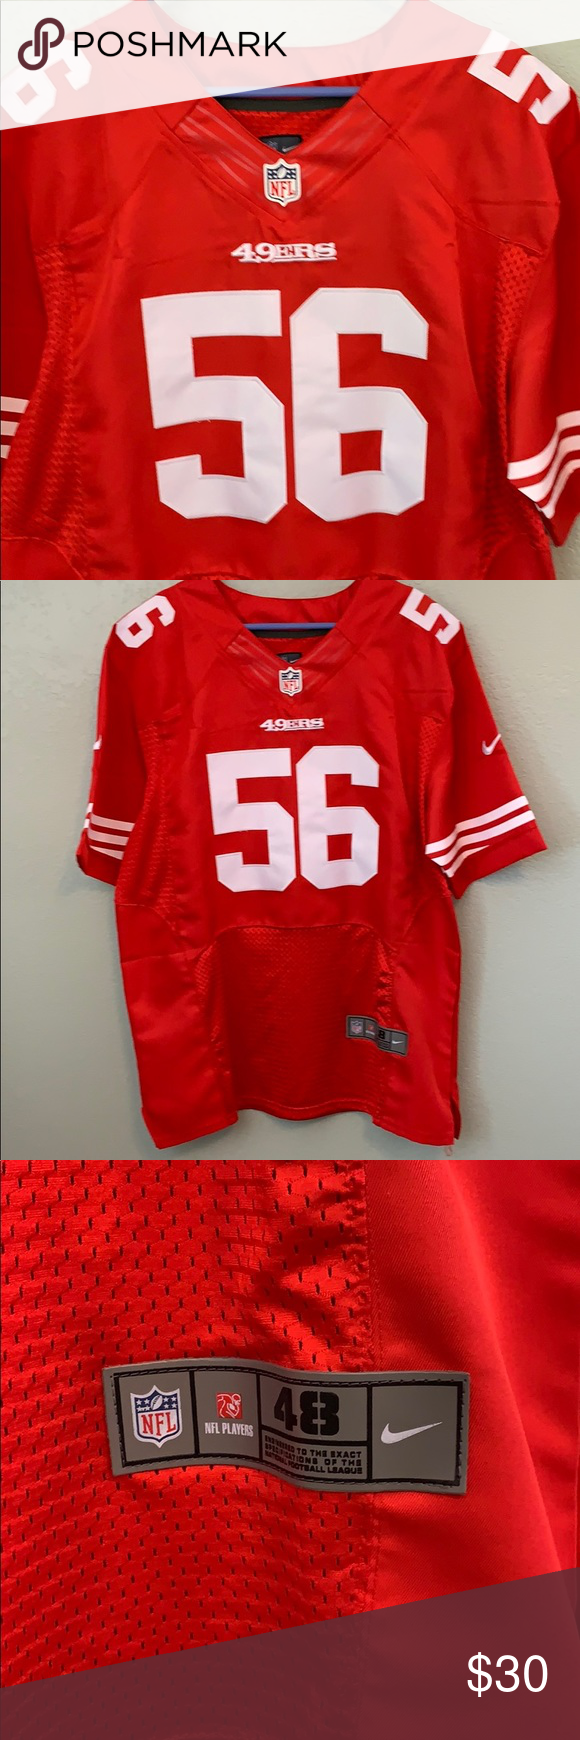 sf49ers jersey